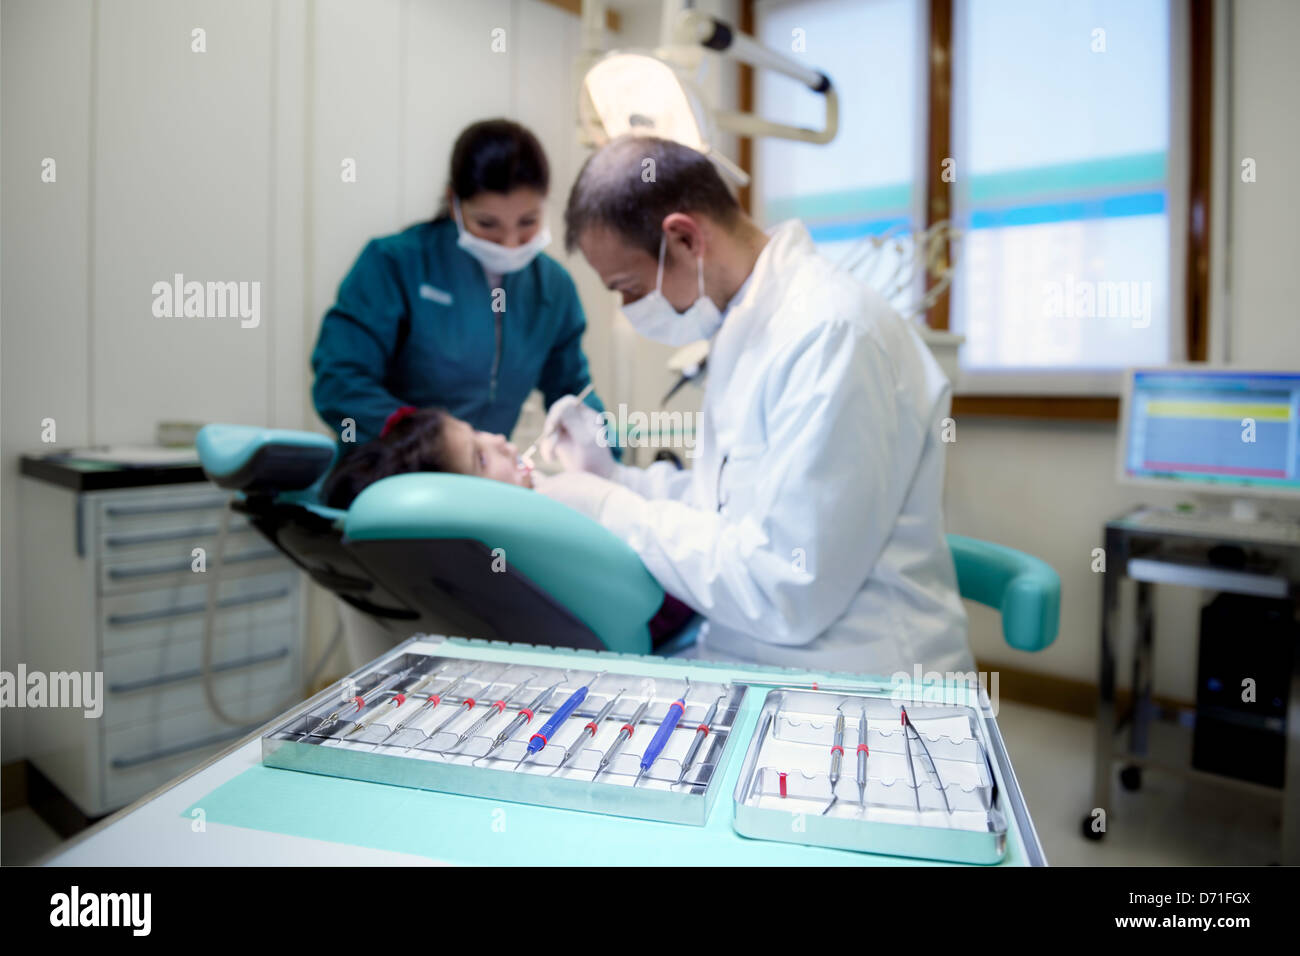 Close up of dental equipment in hospital with patient lying on couch and dentist working. Focus on foreground - Stock Image